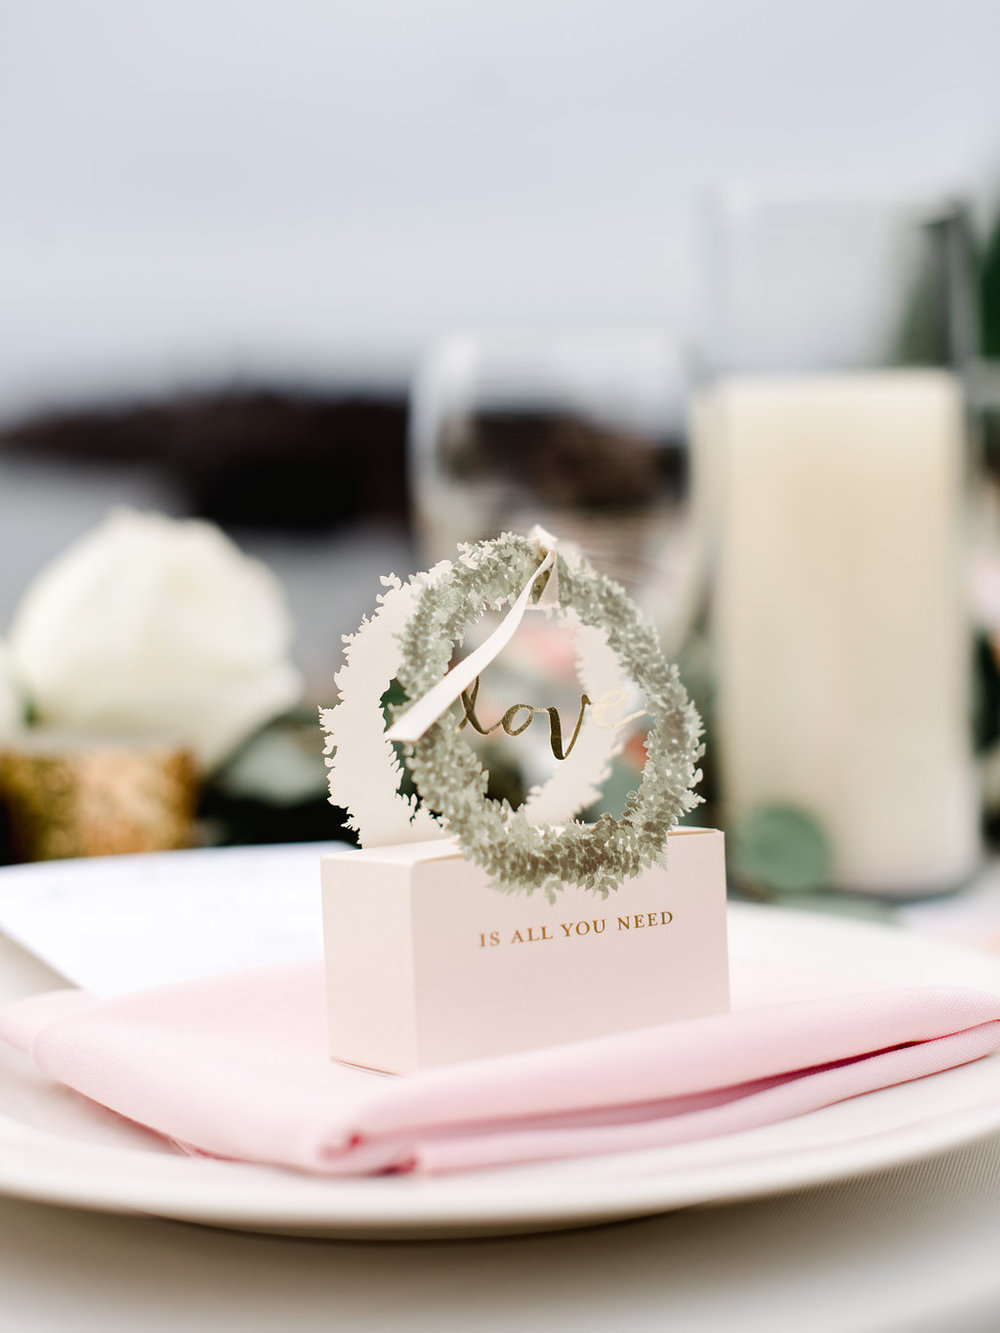 Bliss Wedding Design & Spectacular Events - love is all you need